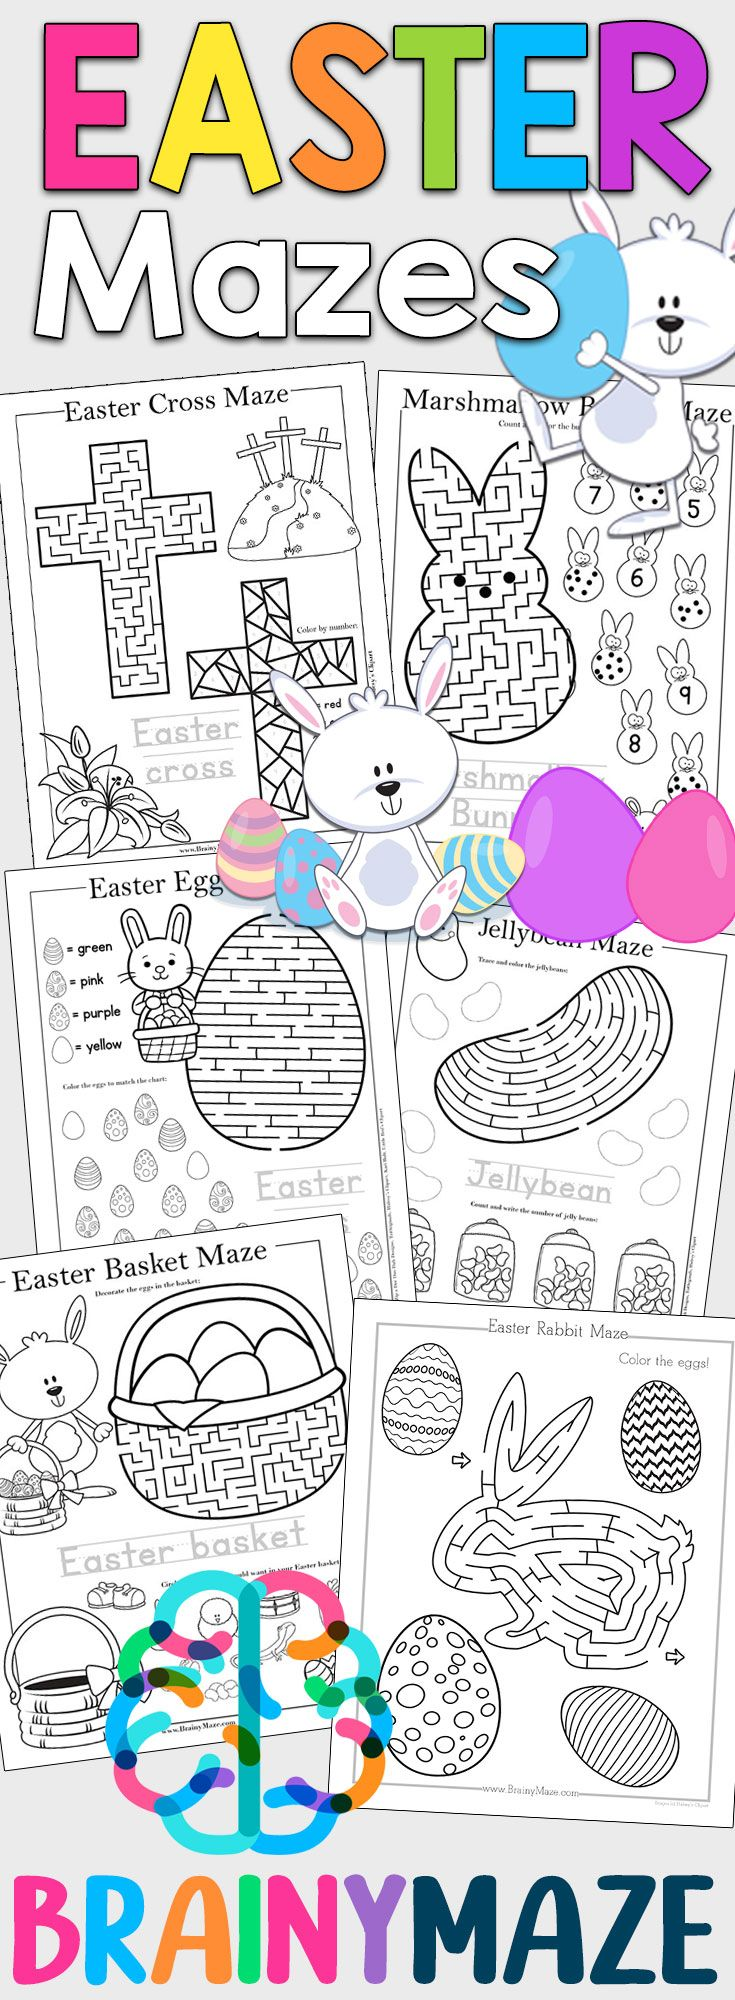 Free Easter Mazes for Kids! 13 Fun & Educational Mazes including ...